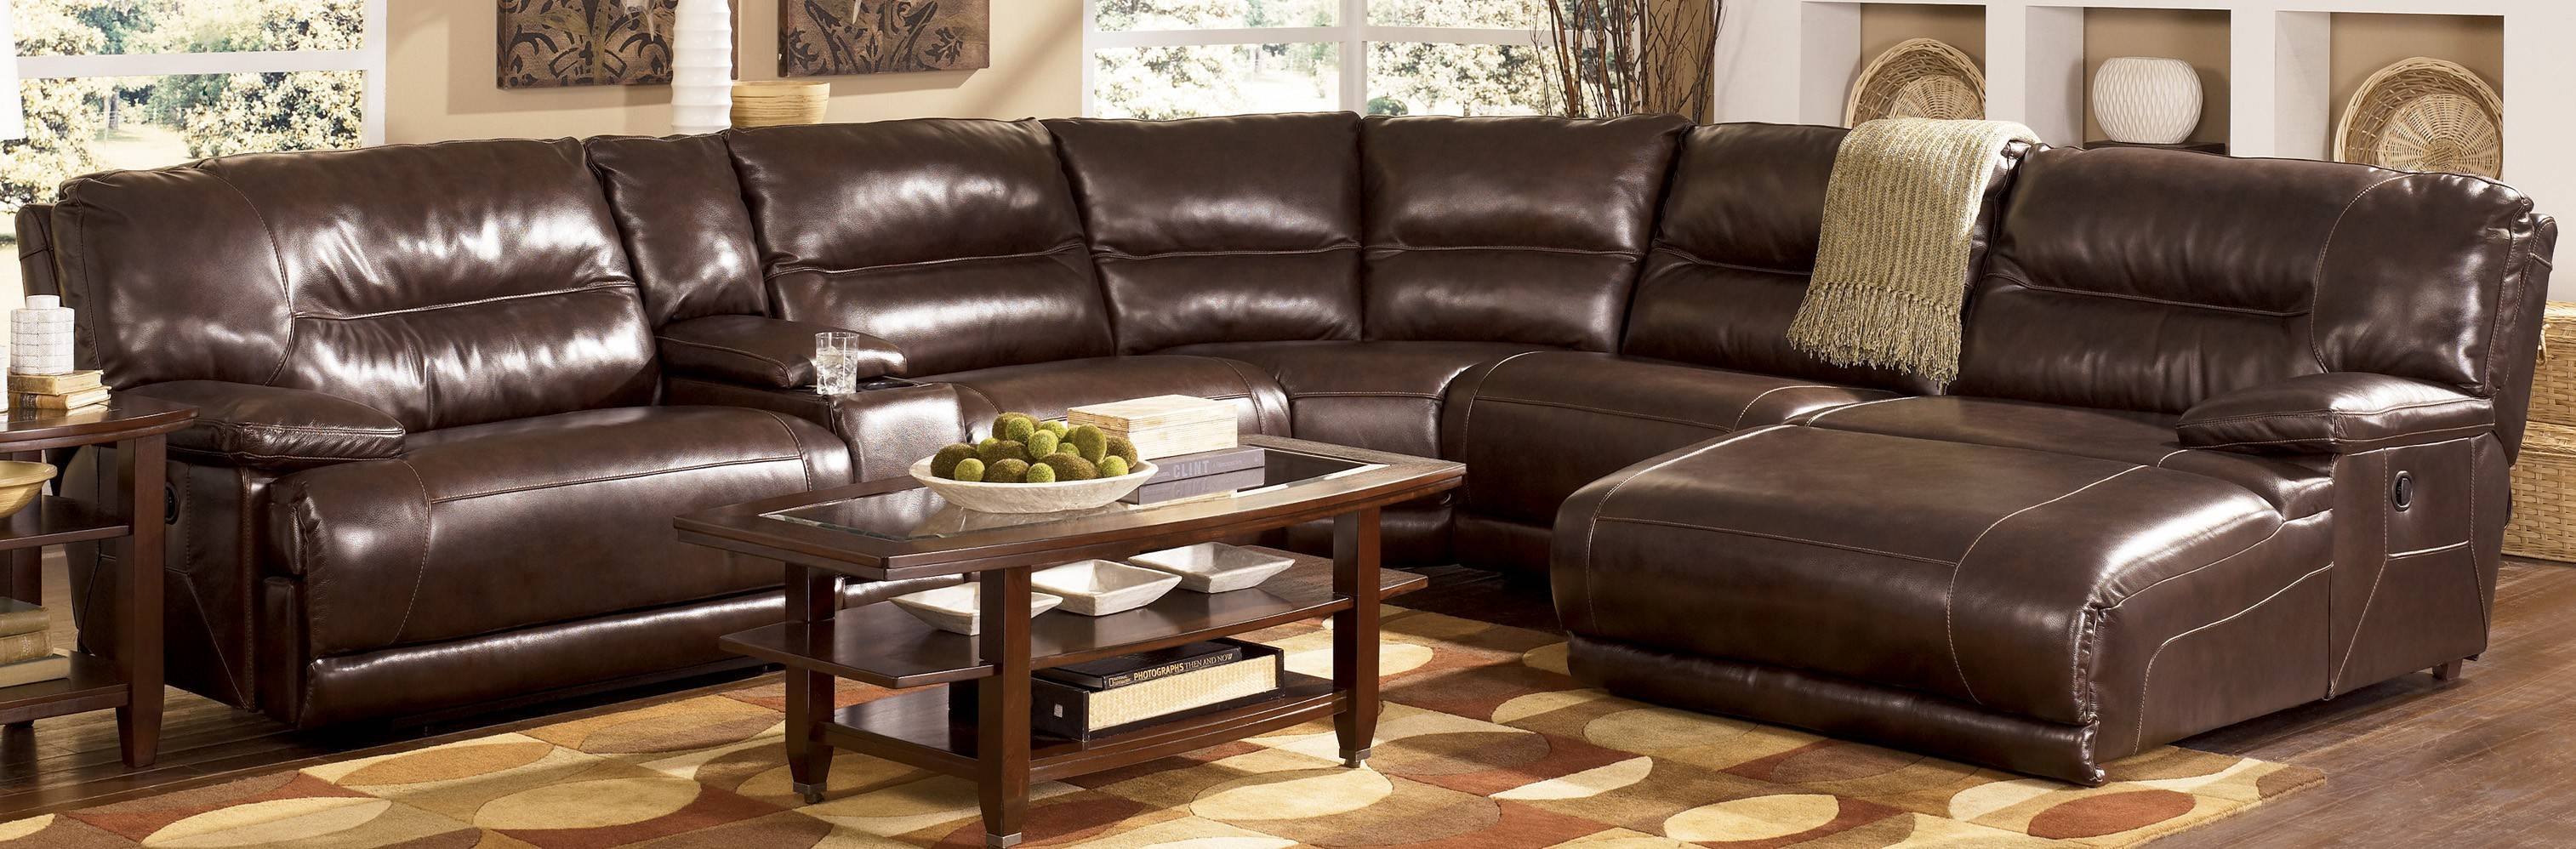 Inspiring Leather Sectional Sofas With Recliners And Chaise 23 For regarding Down Filled Sofas And Sectionals (Image 15 of 30)